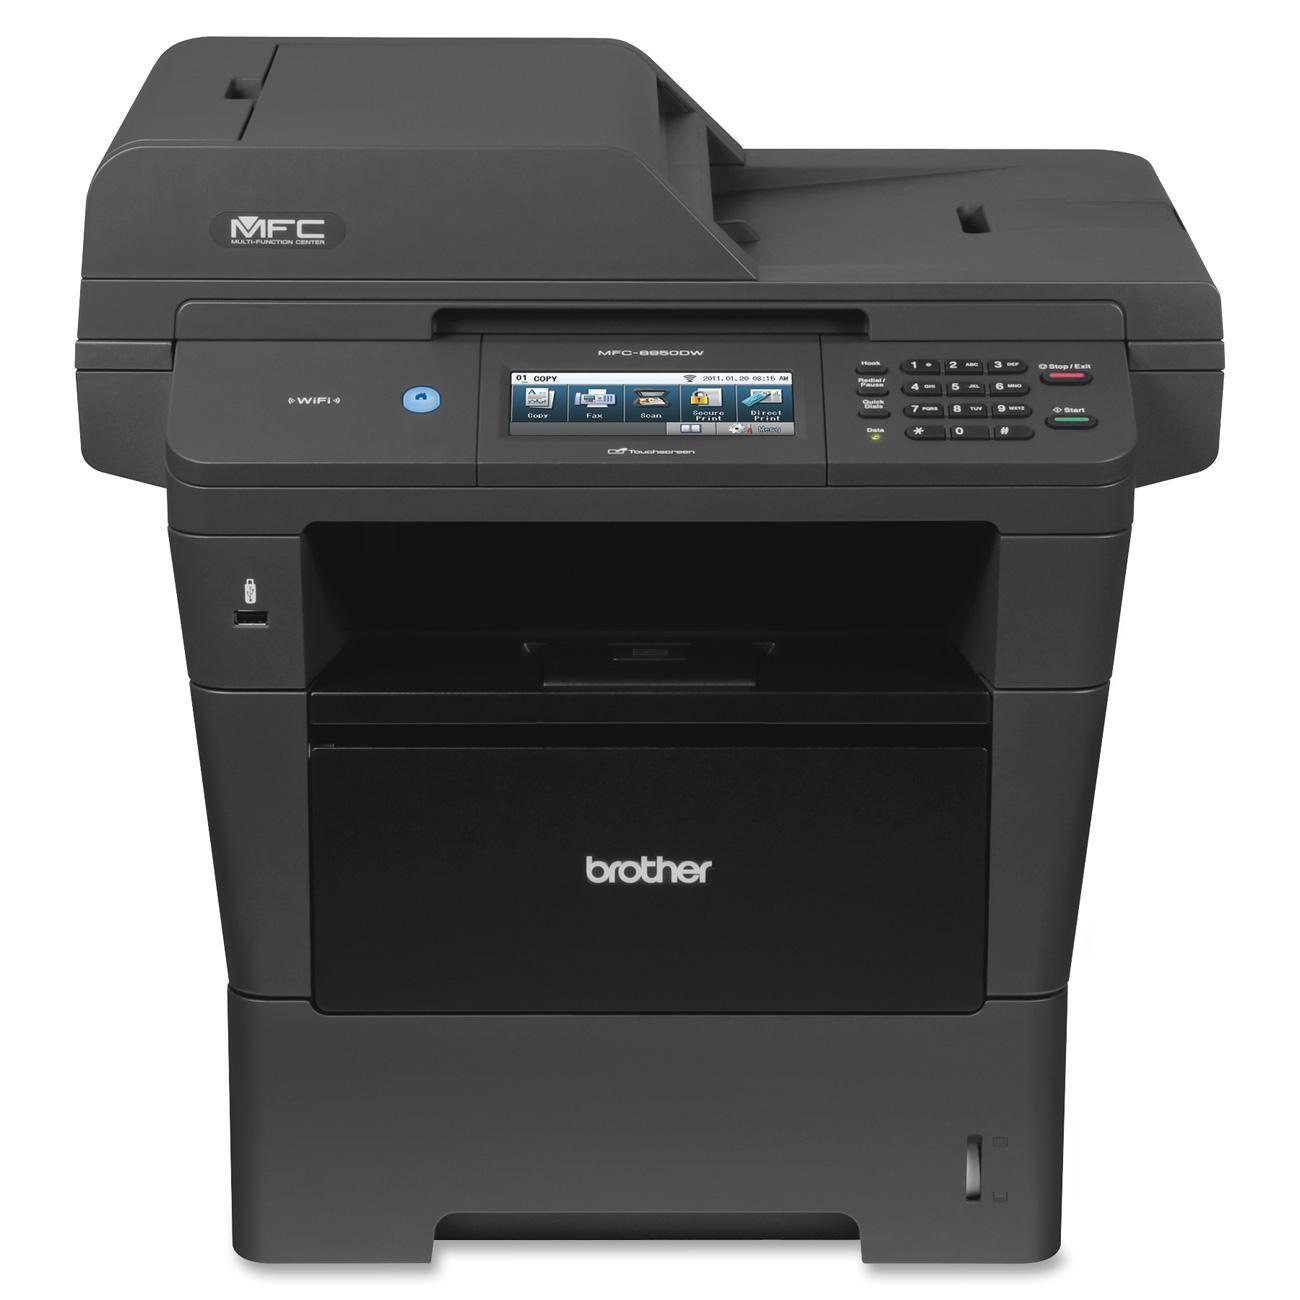 BROTHER MFC-8950DW LAN WINDOWS DRIVER DOWNLOAD